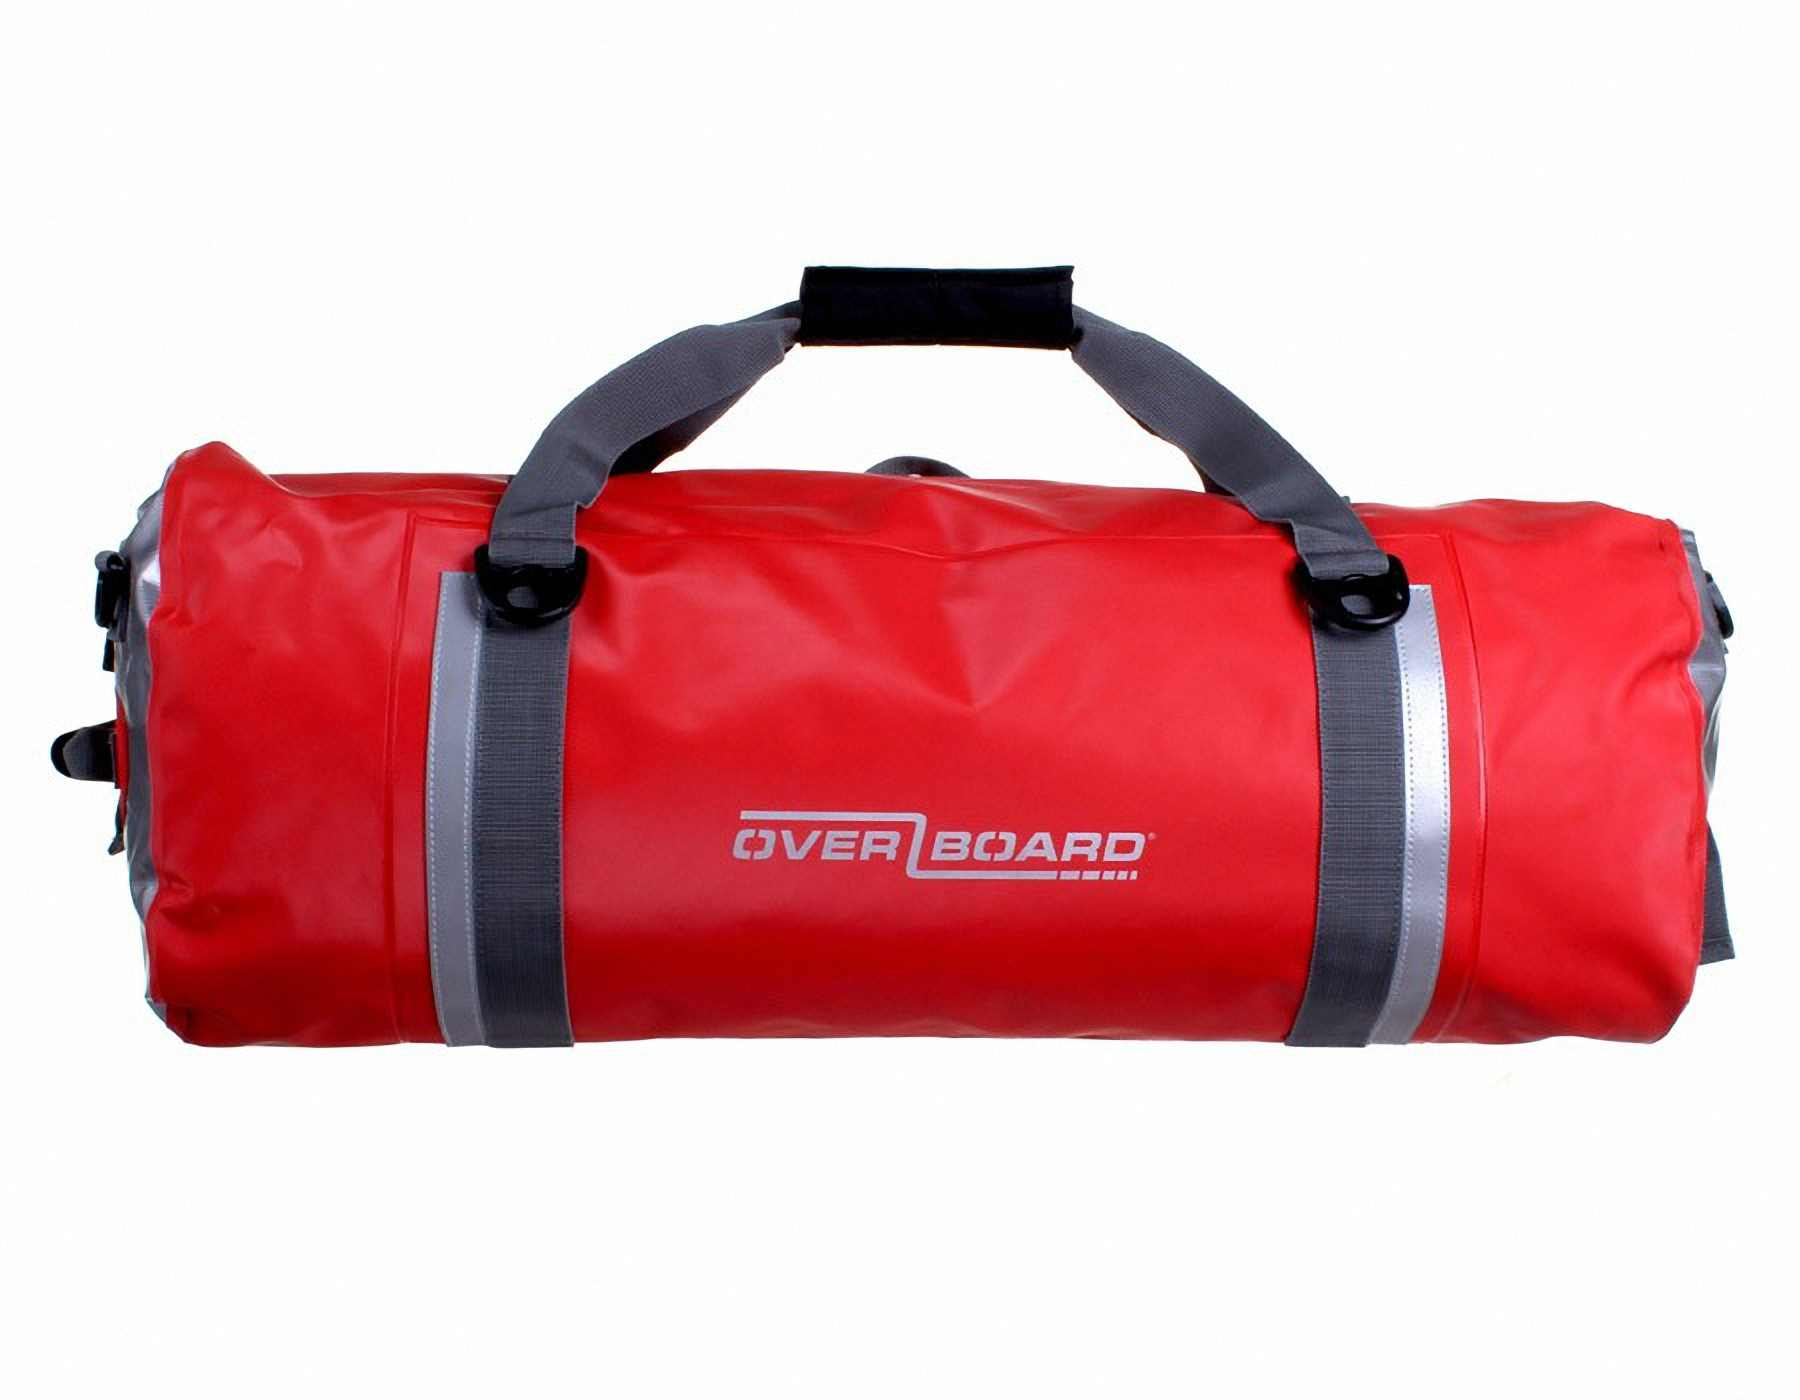 Водонепроницаемая сумка OverBoard OB1154R - Pro-Sports Waterproof Duffel Bag - 60 литров.  Фото 5